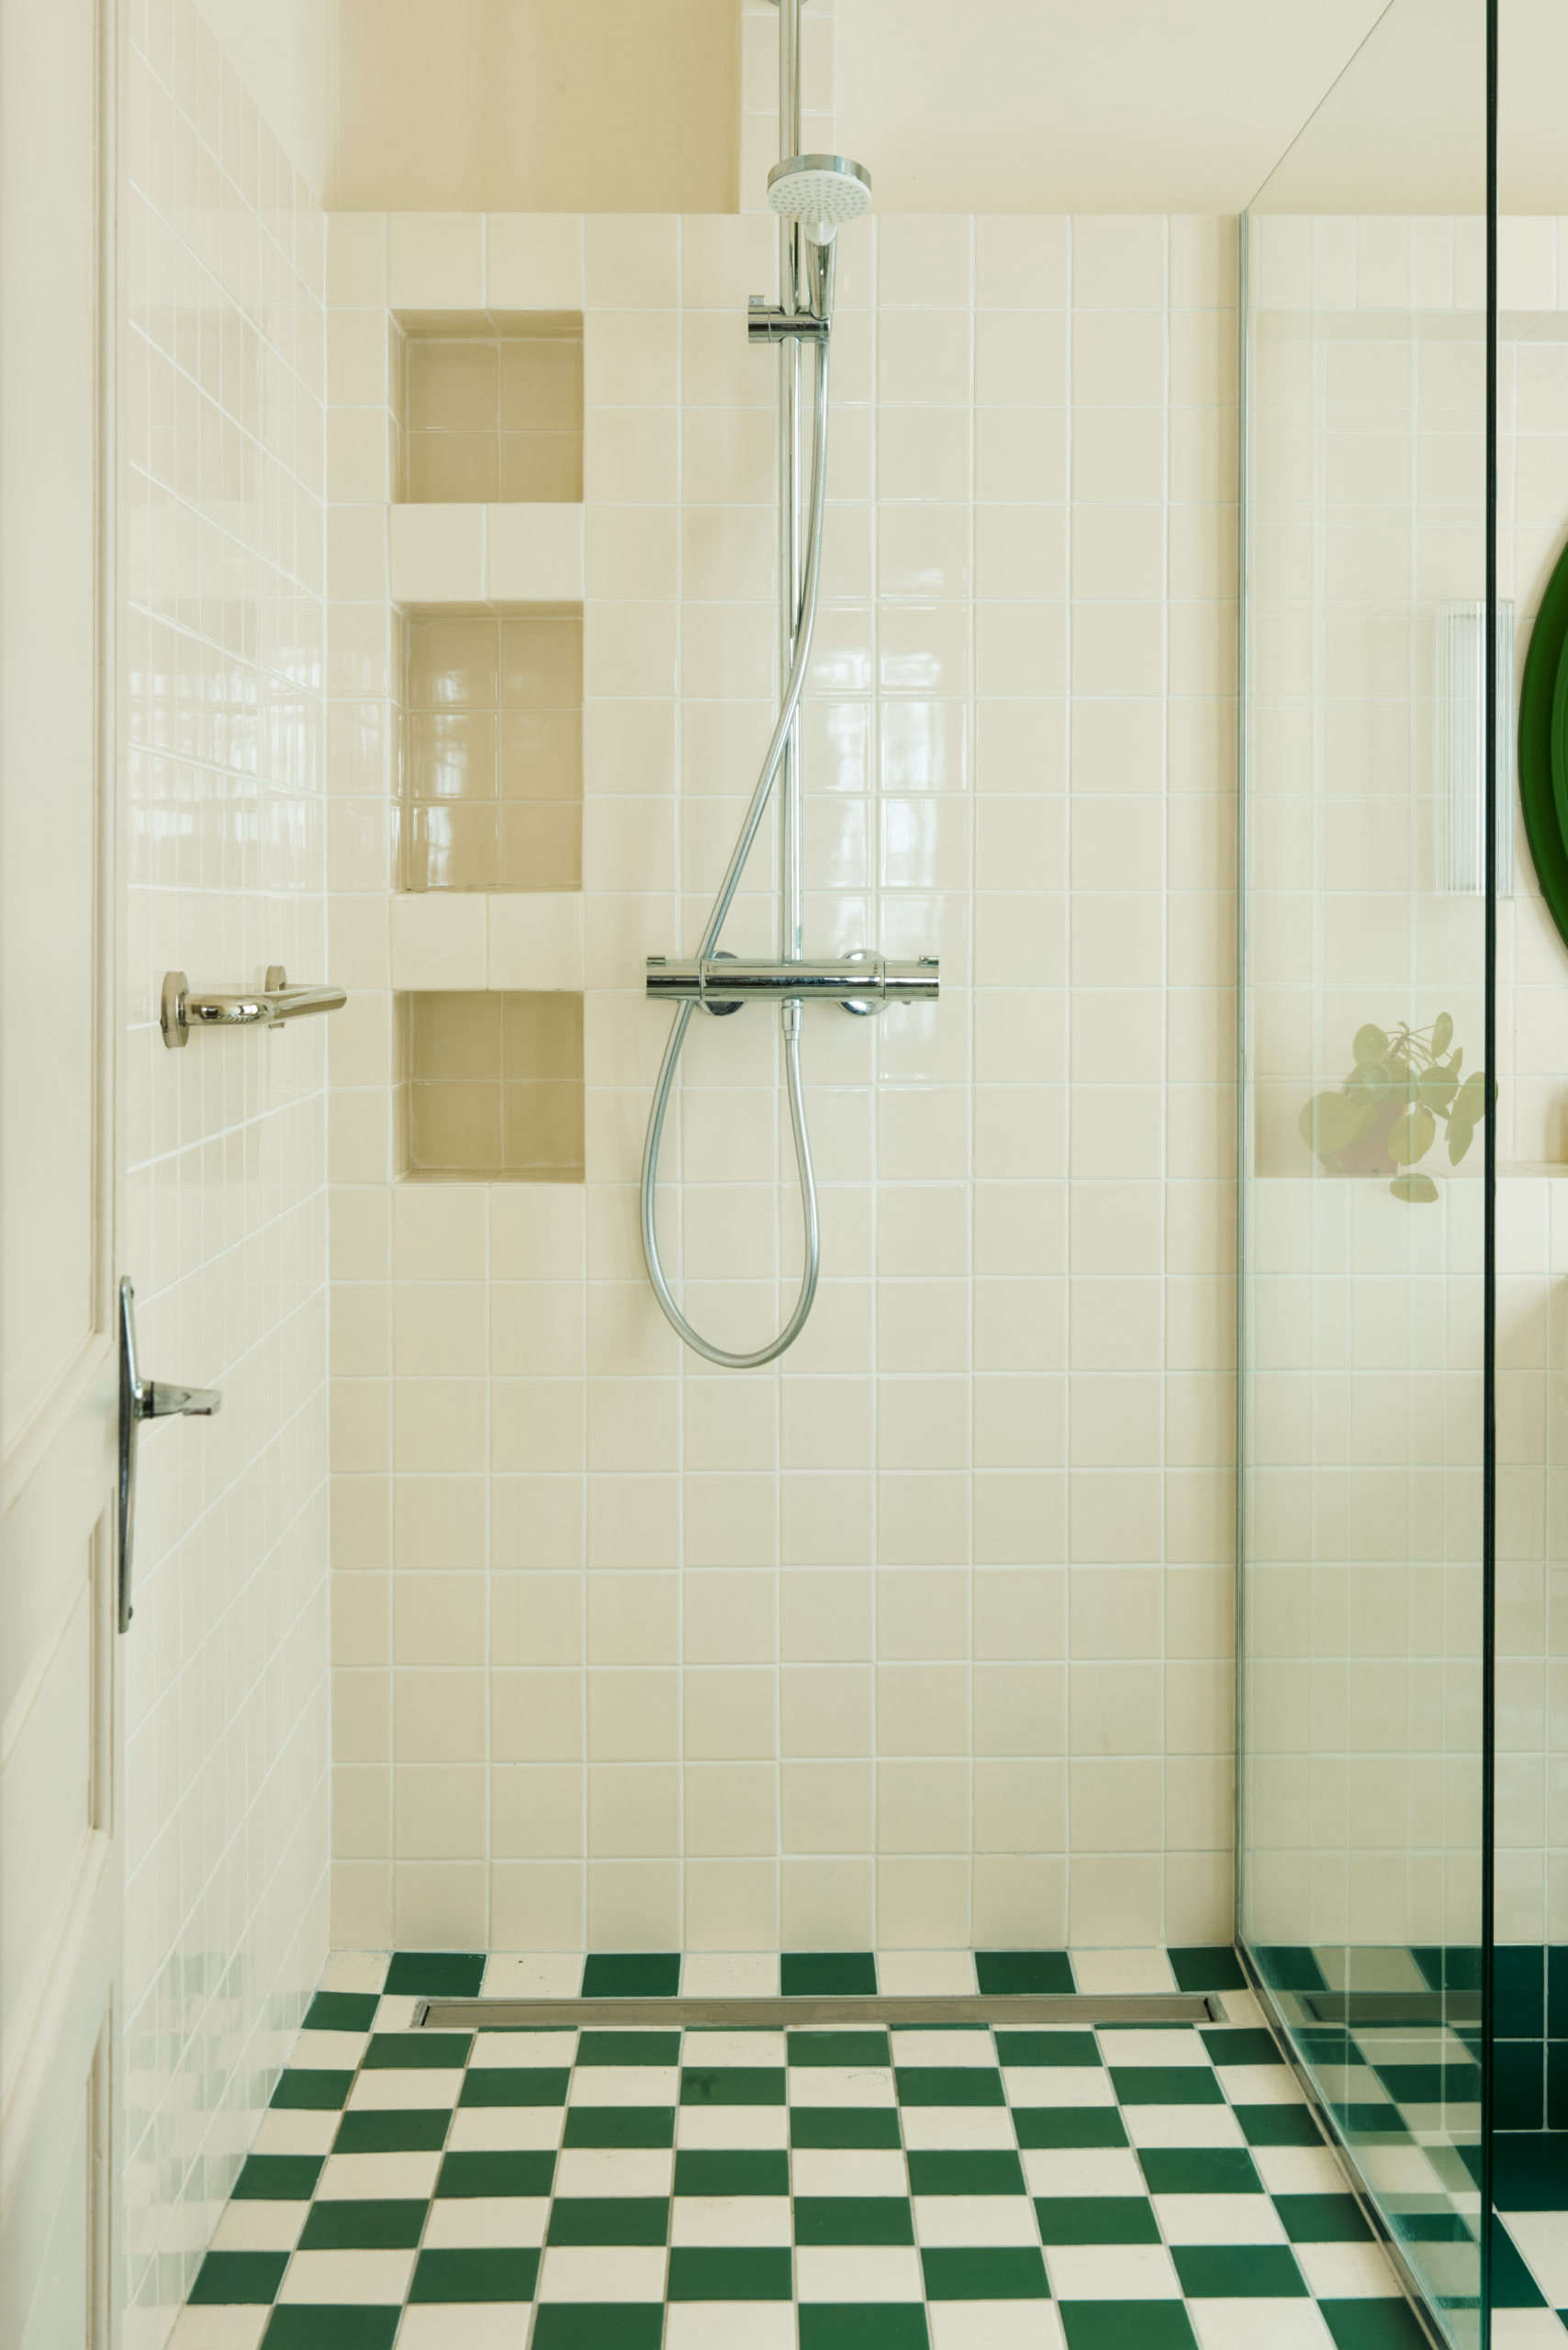 The glass shower is thoughtfully detailed with tiled niches.